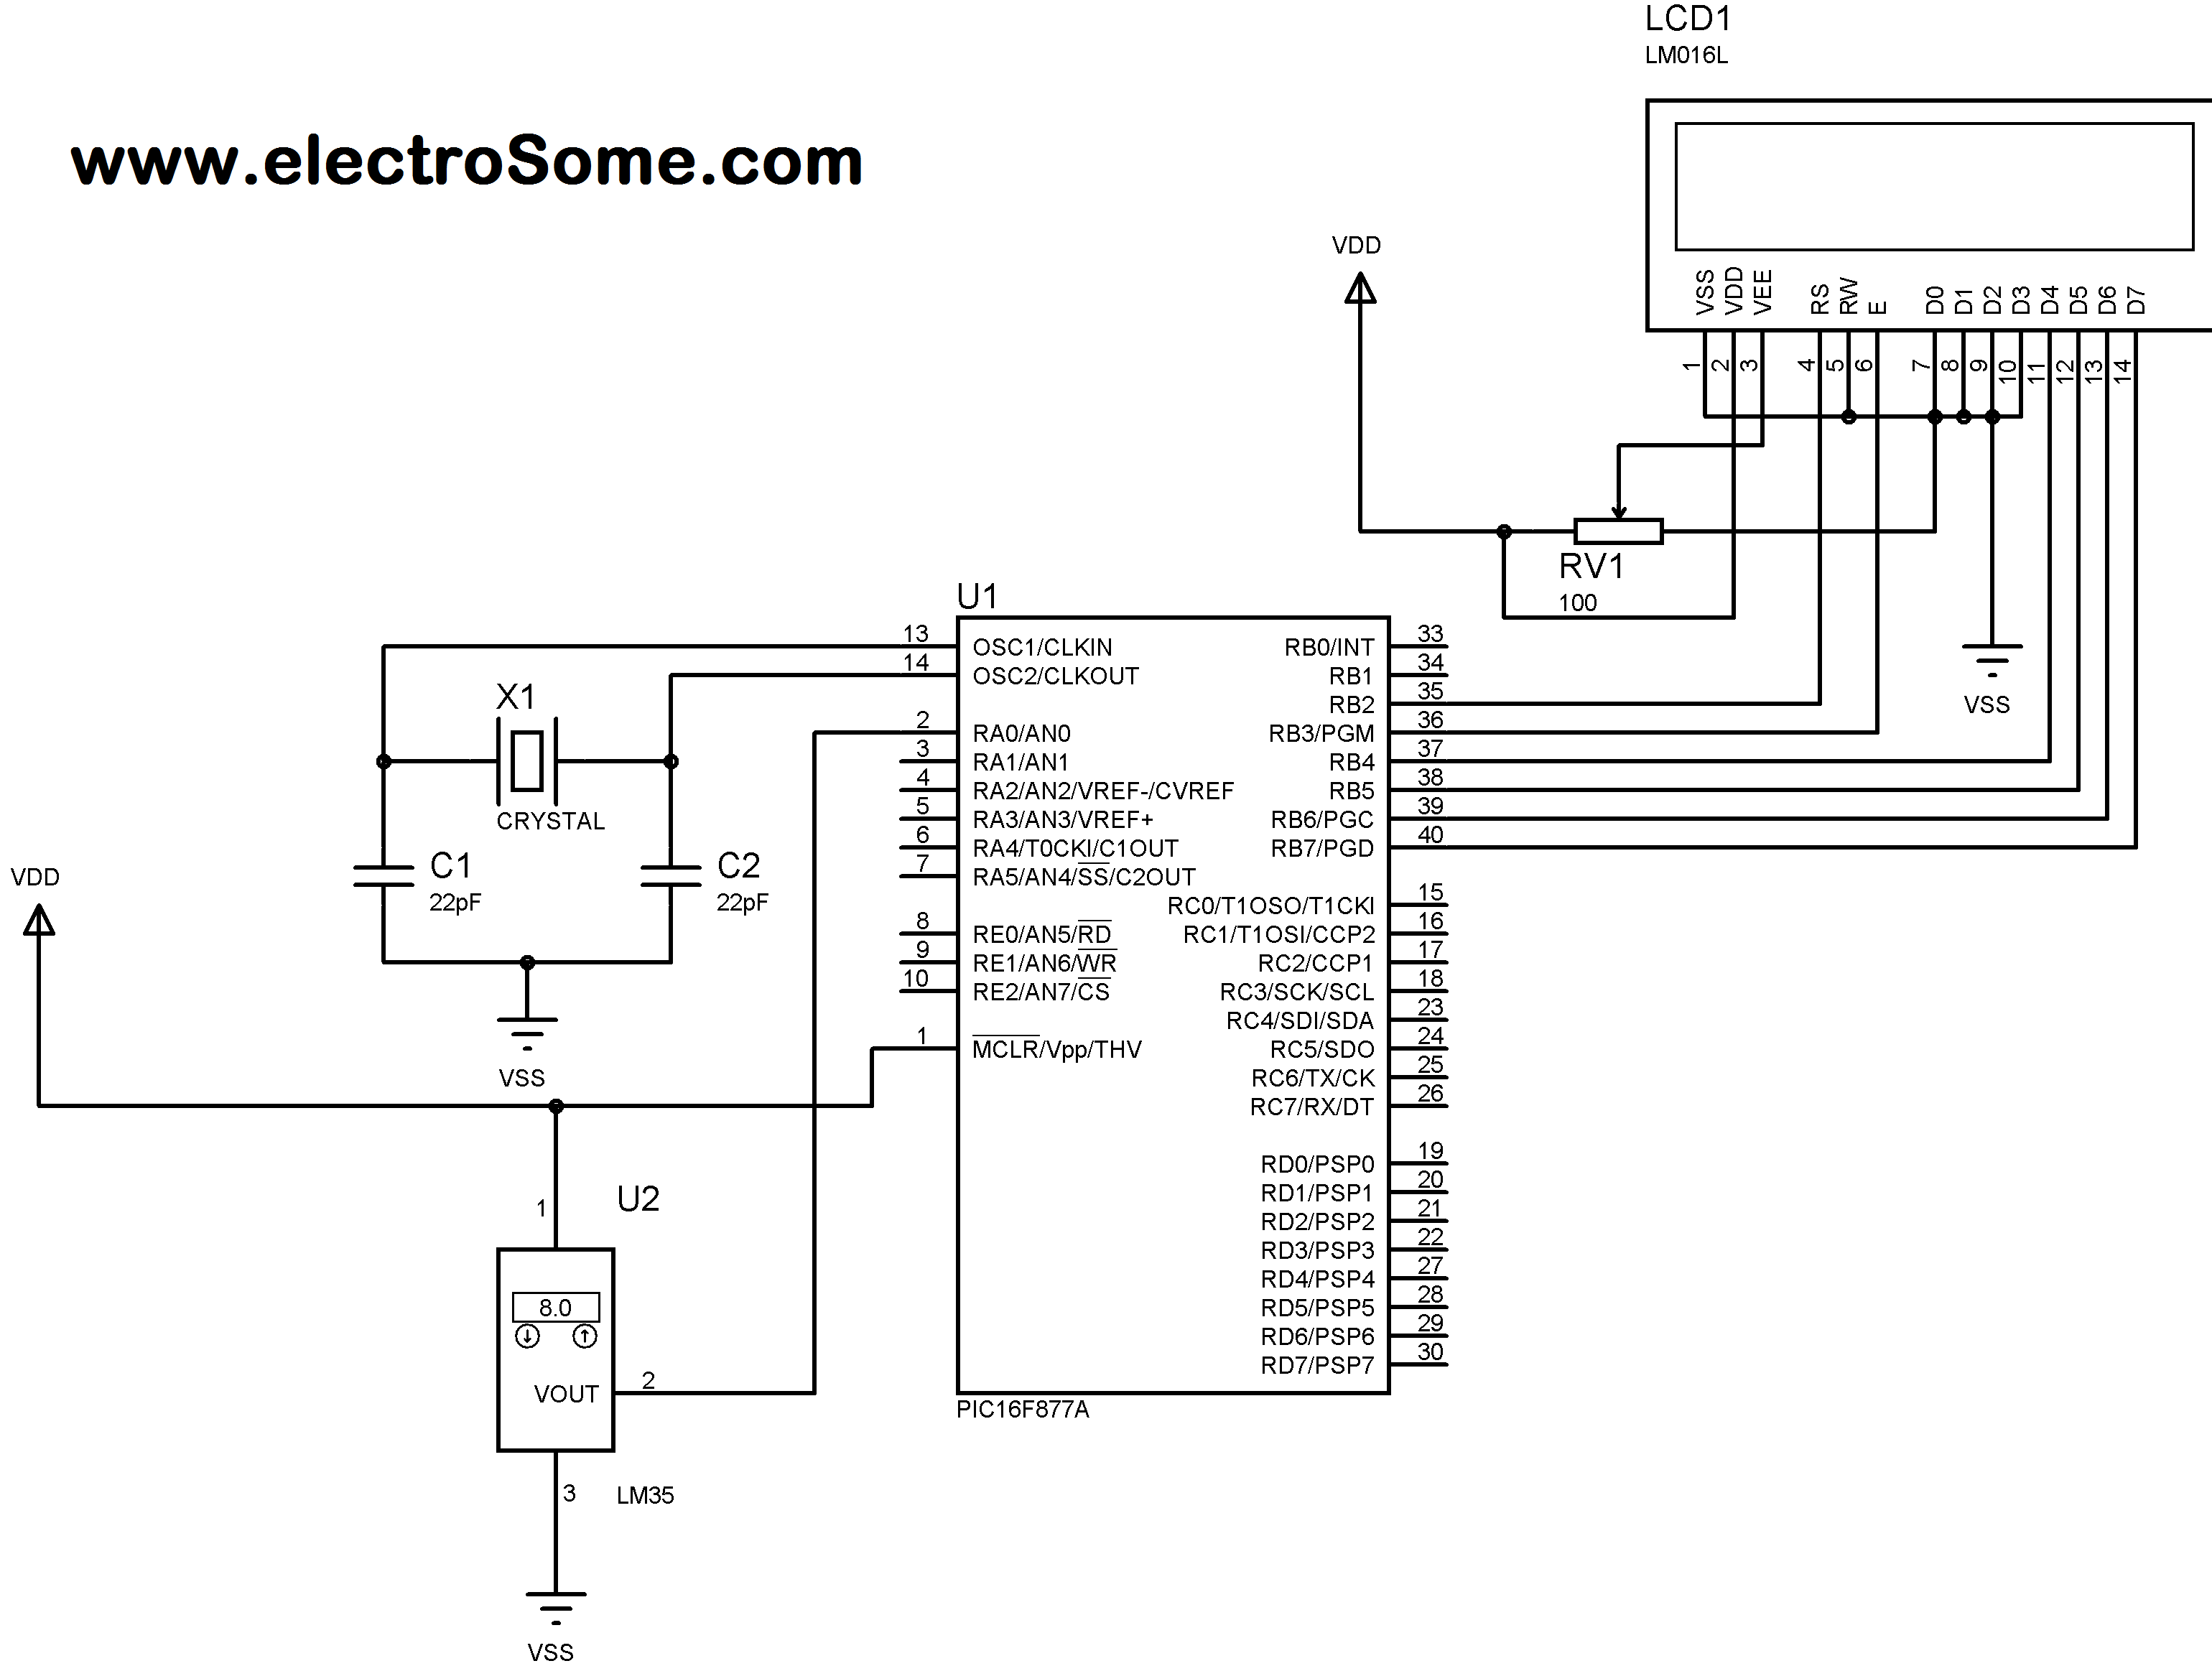 Digital Thermometer Using Pic Microcontroller And Lm35 Designing Circuit Diagram